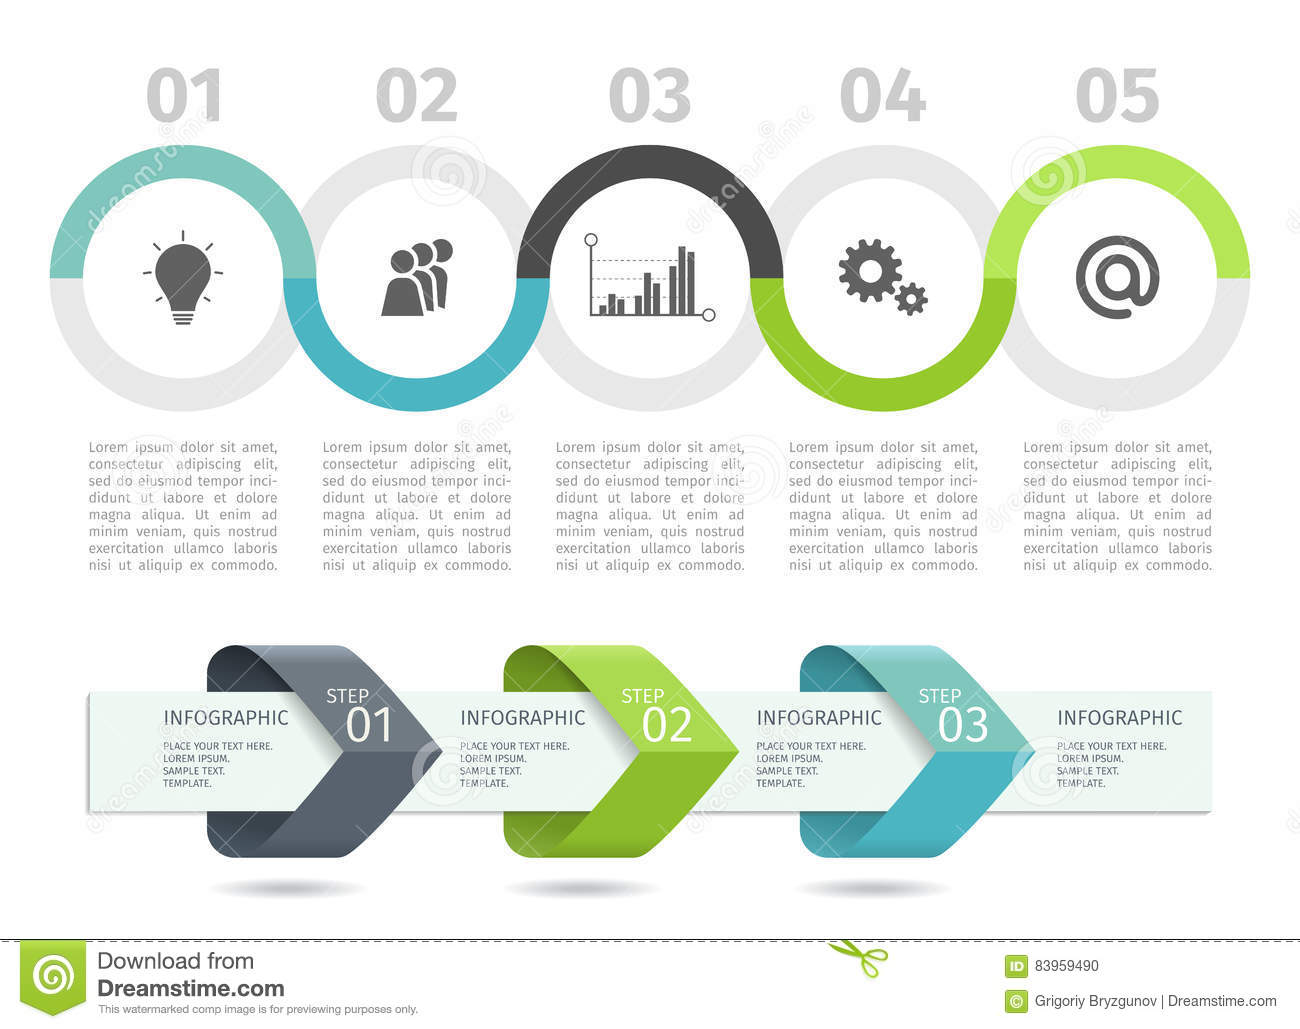 Infographic Template With 3 Options. Royalty-Free Stock Photography